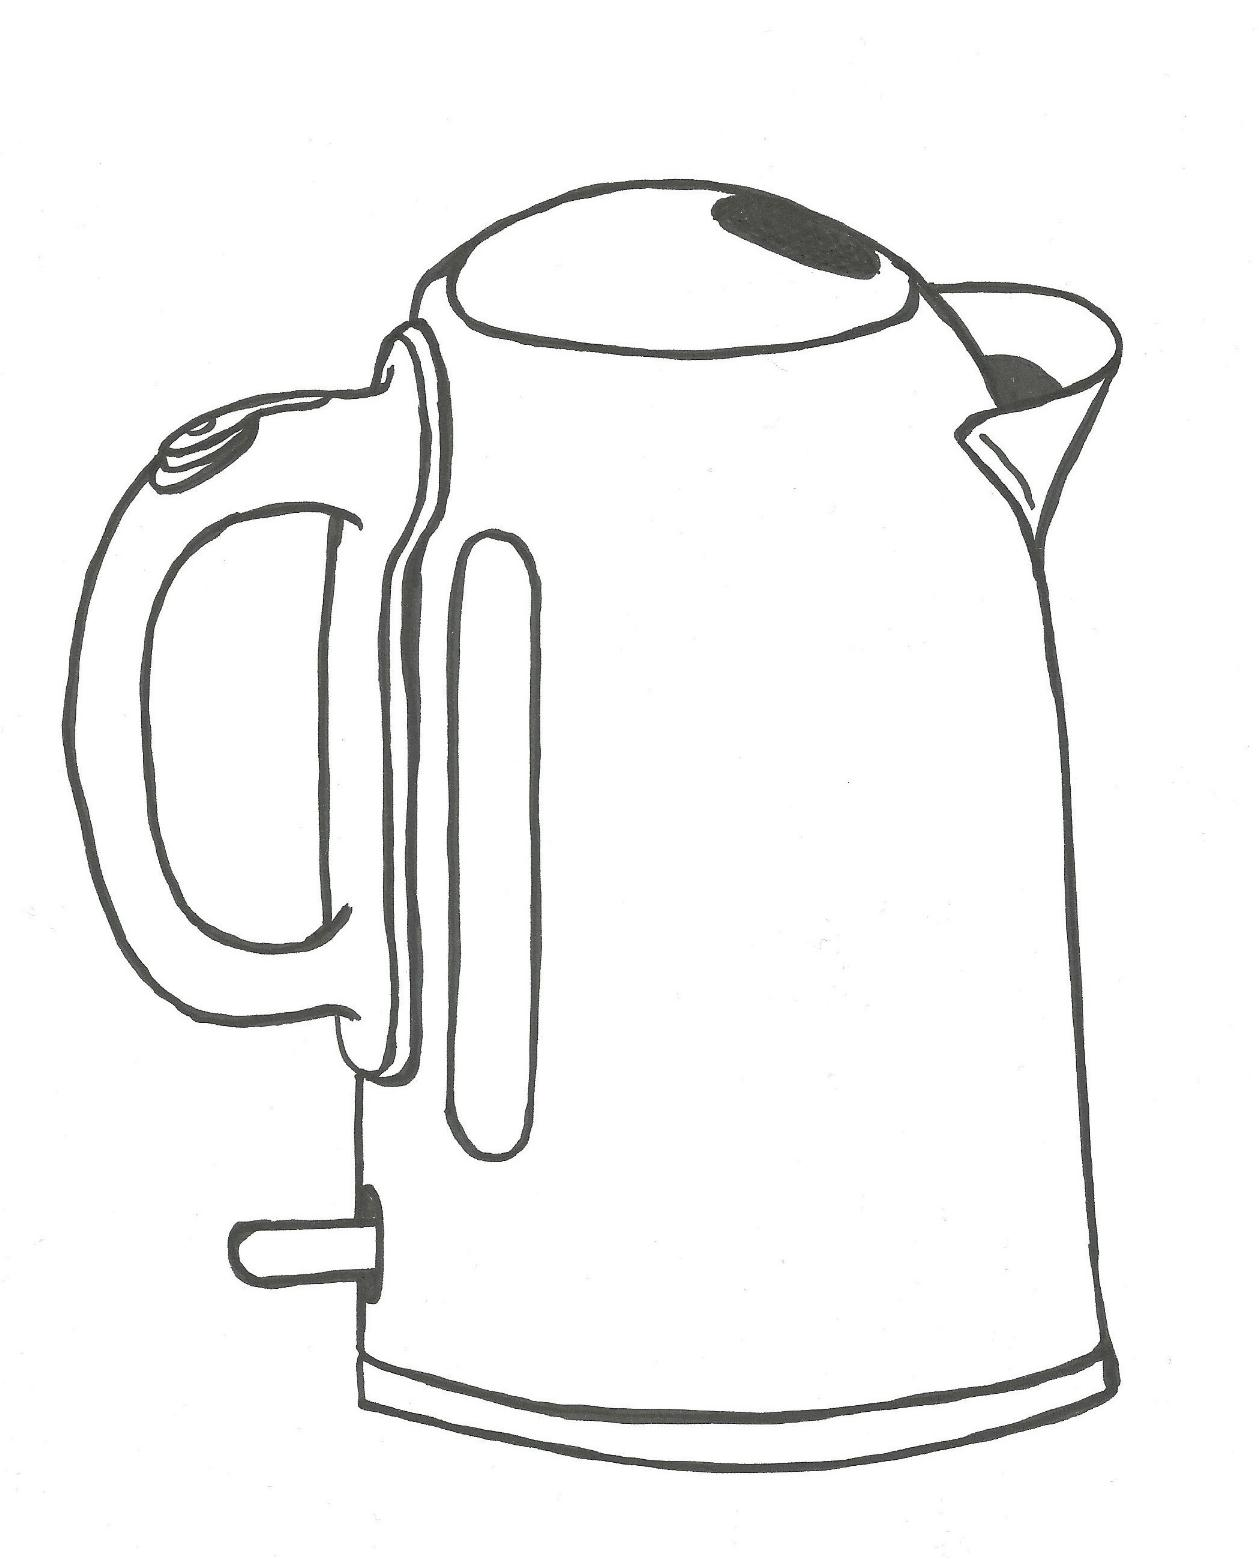 June 20, 2013 - Today's challenge was to draw something from the kitchen without erasing in any way, and thus, this kettle emerged.